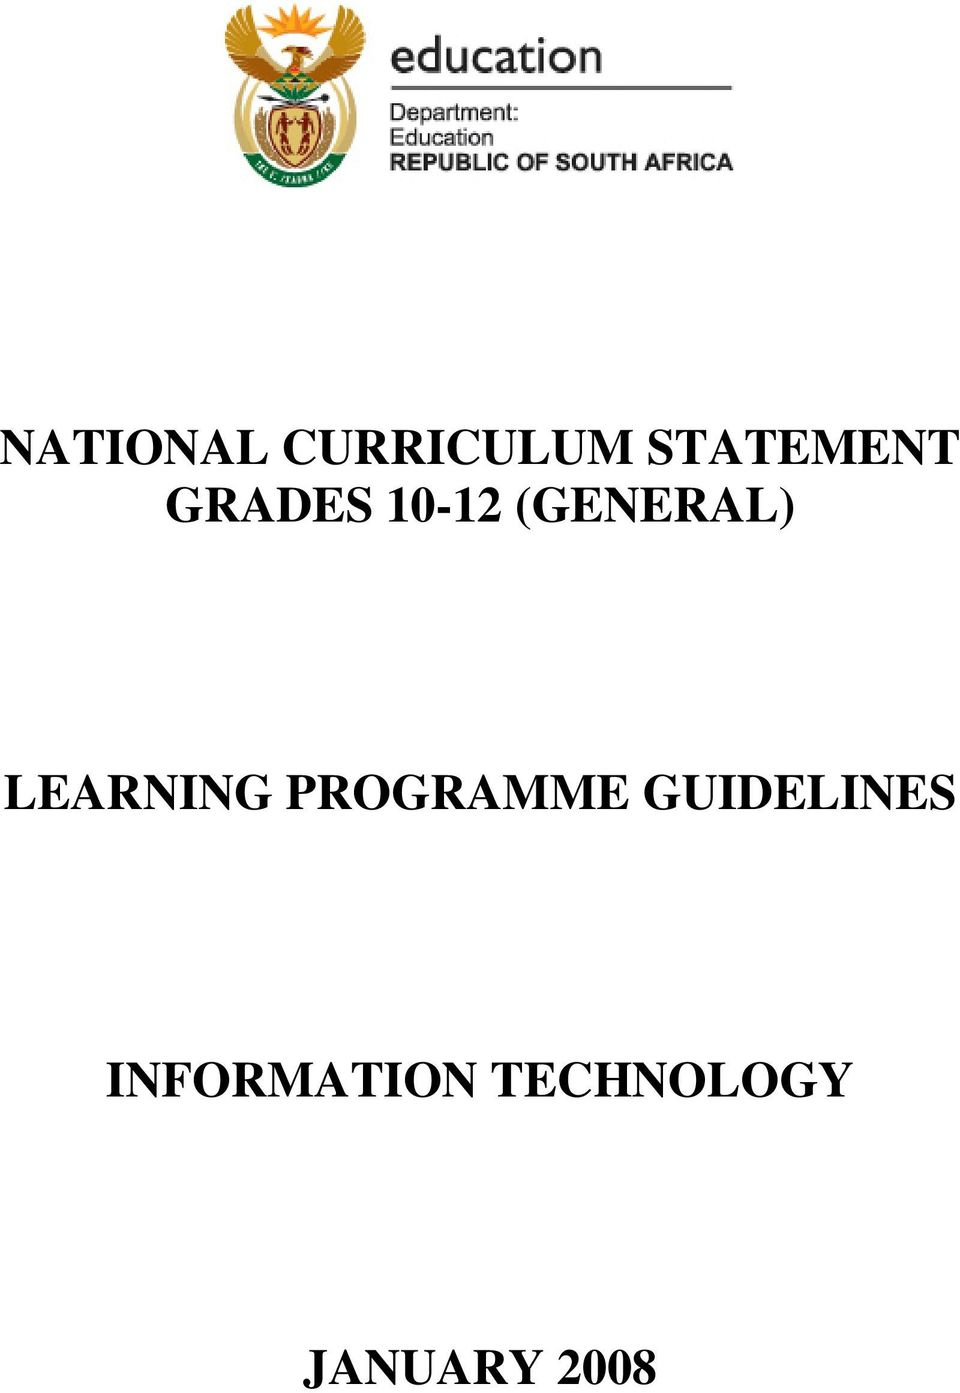 LEARNING PROGRAMME GUIDELINES